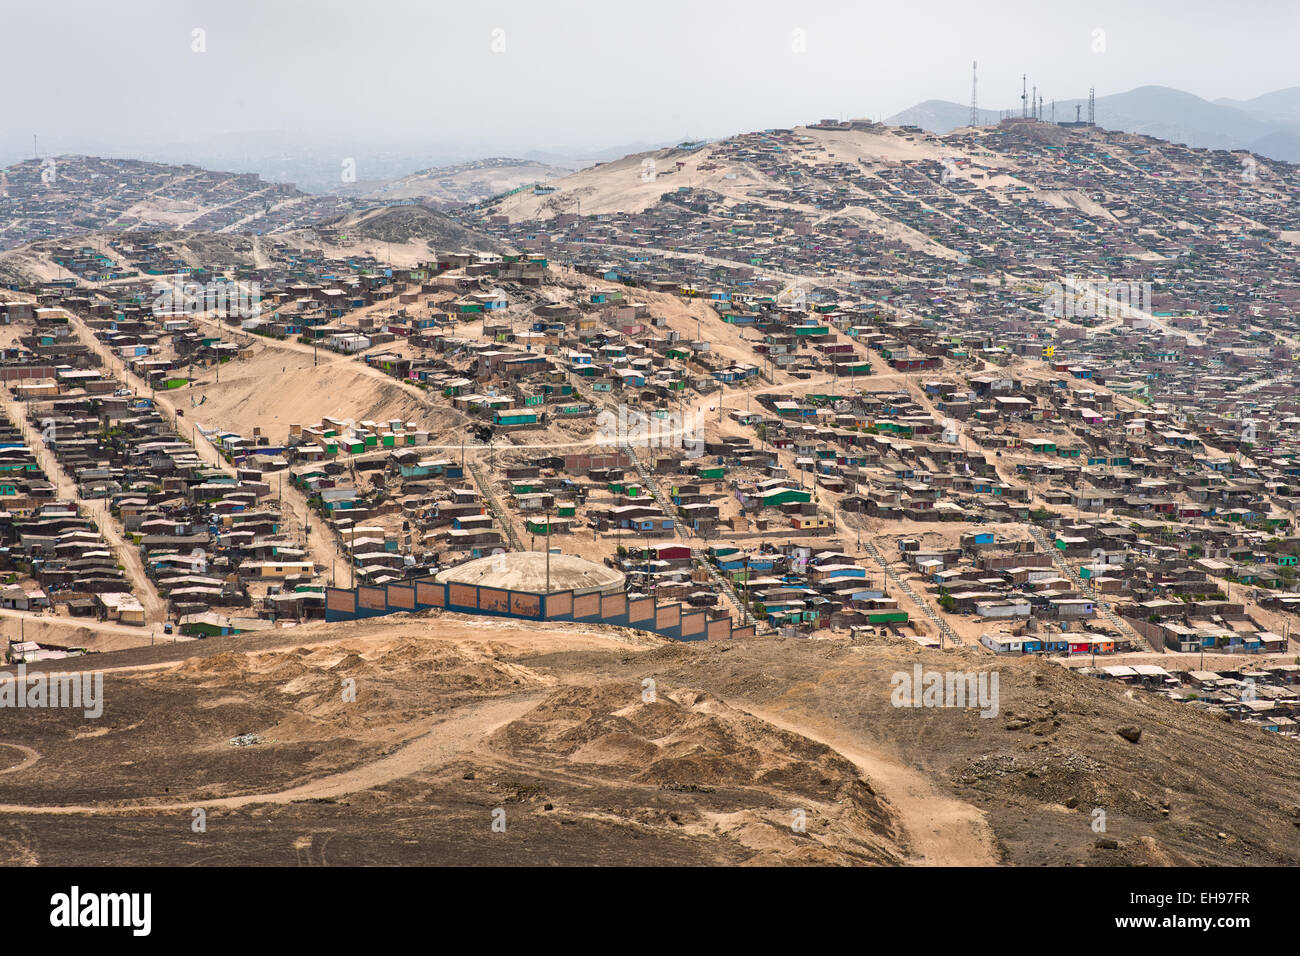 A sprawling settlement of houses and wooden shacks is seen on the dusty hillsides of Pachacútec, a desert suburb - Stock Image